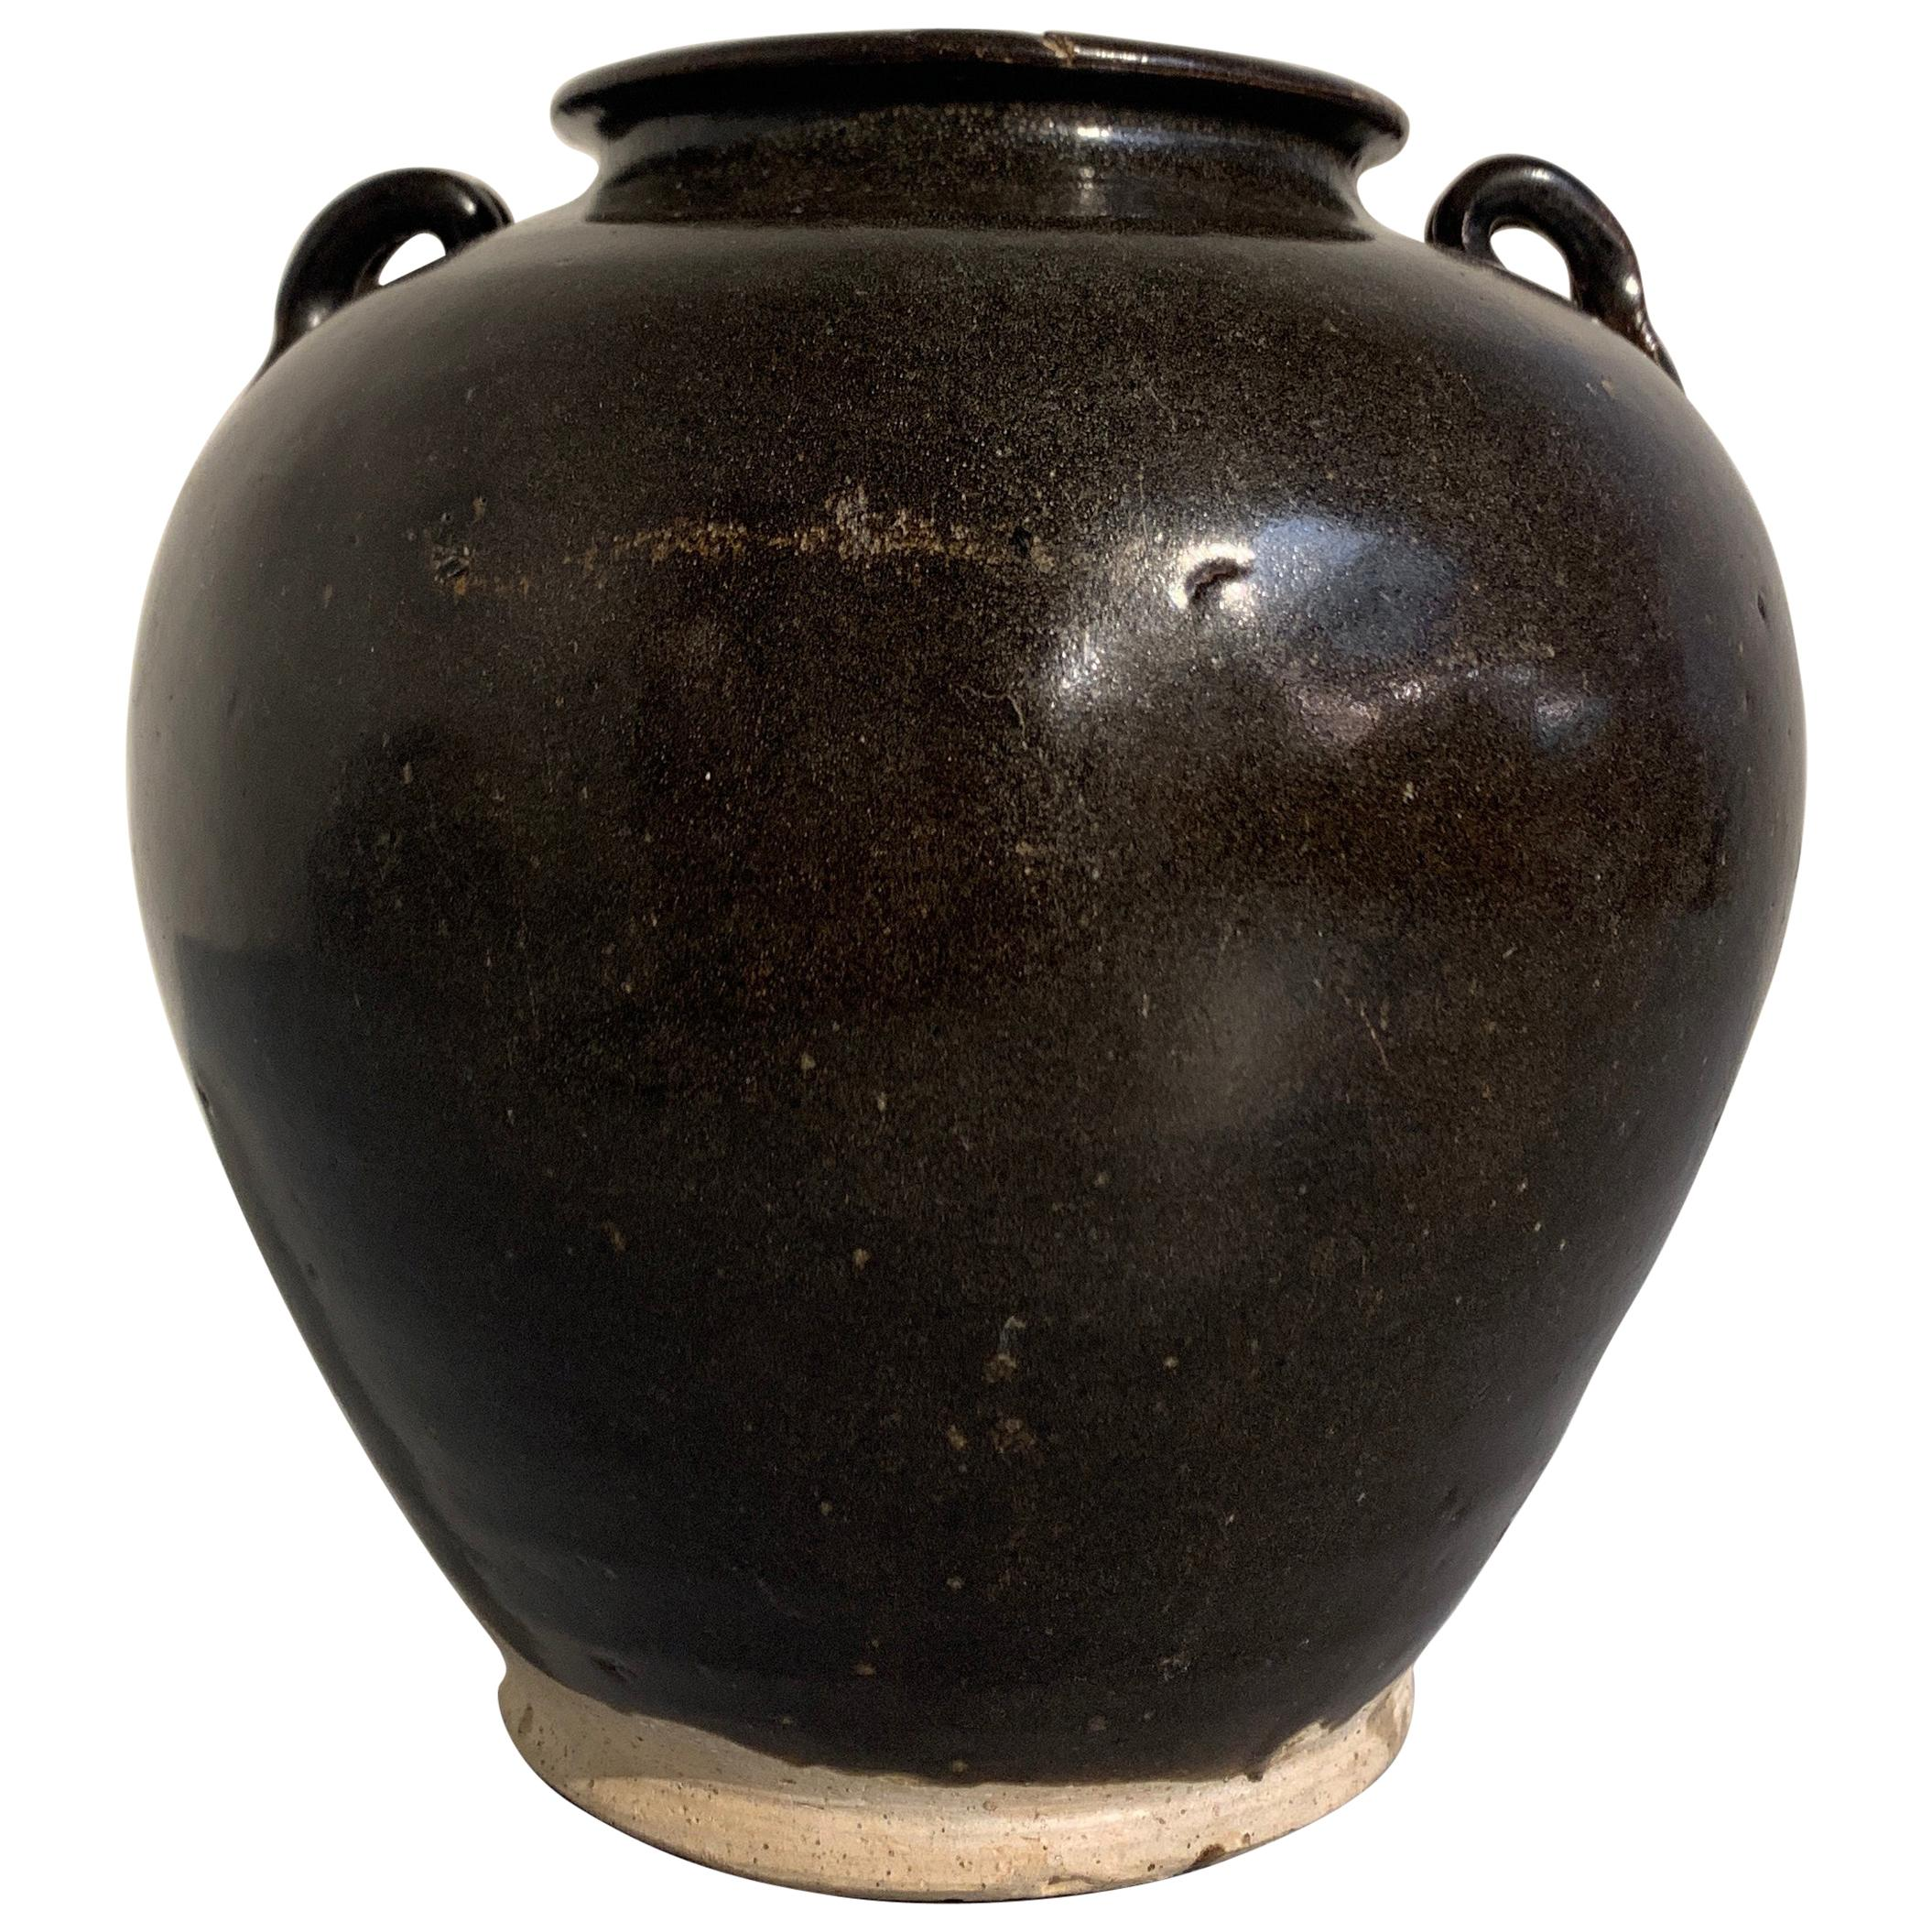 Chinese Tang Dynasty Brown Glazed Jar with Lug Handles, 9th-10th Century